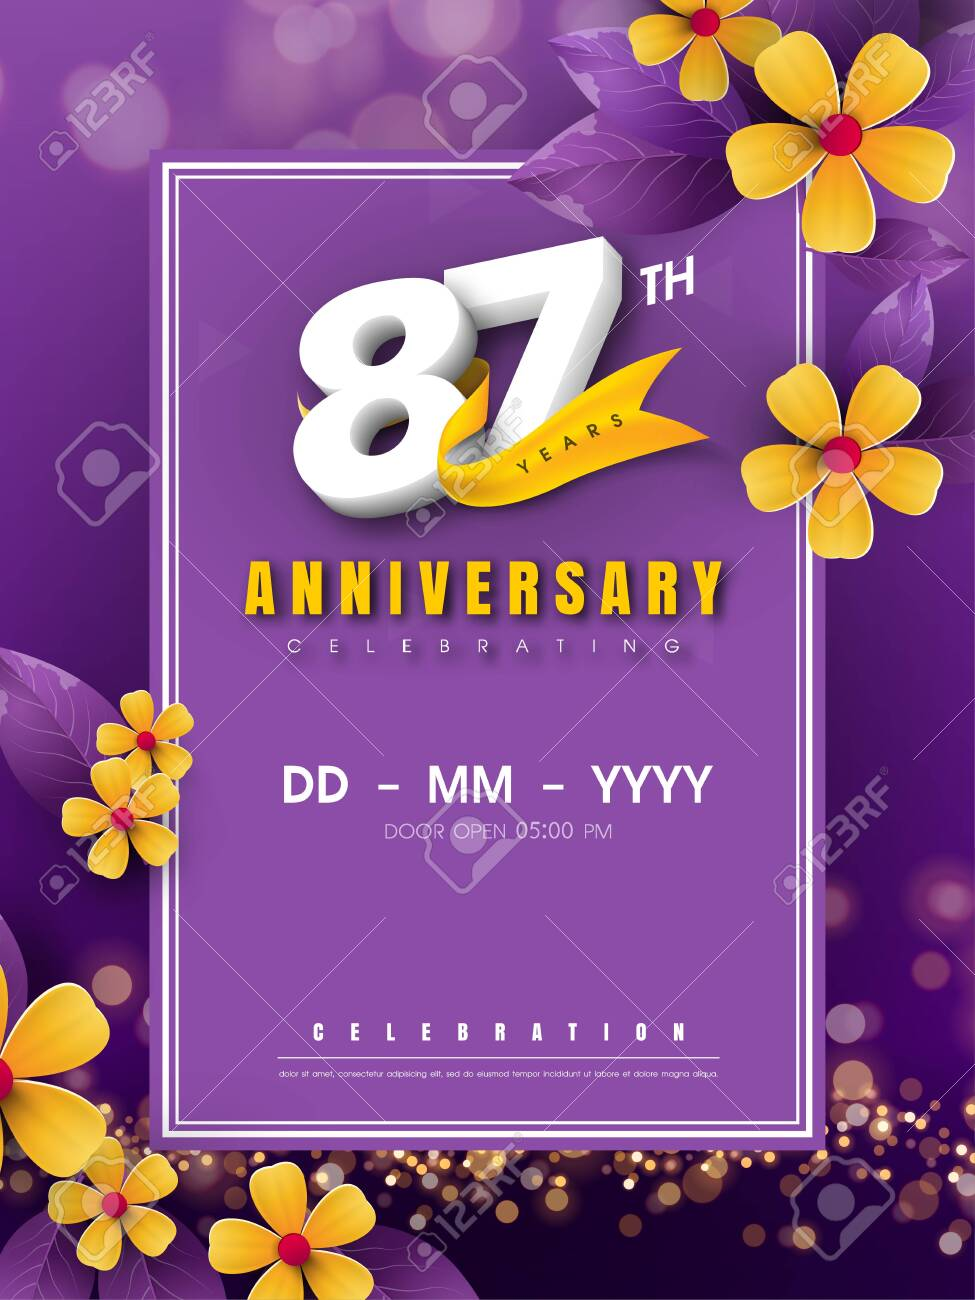 87 Years Anniversary Template On Golden Flower And Purple Background